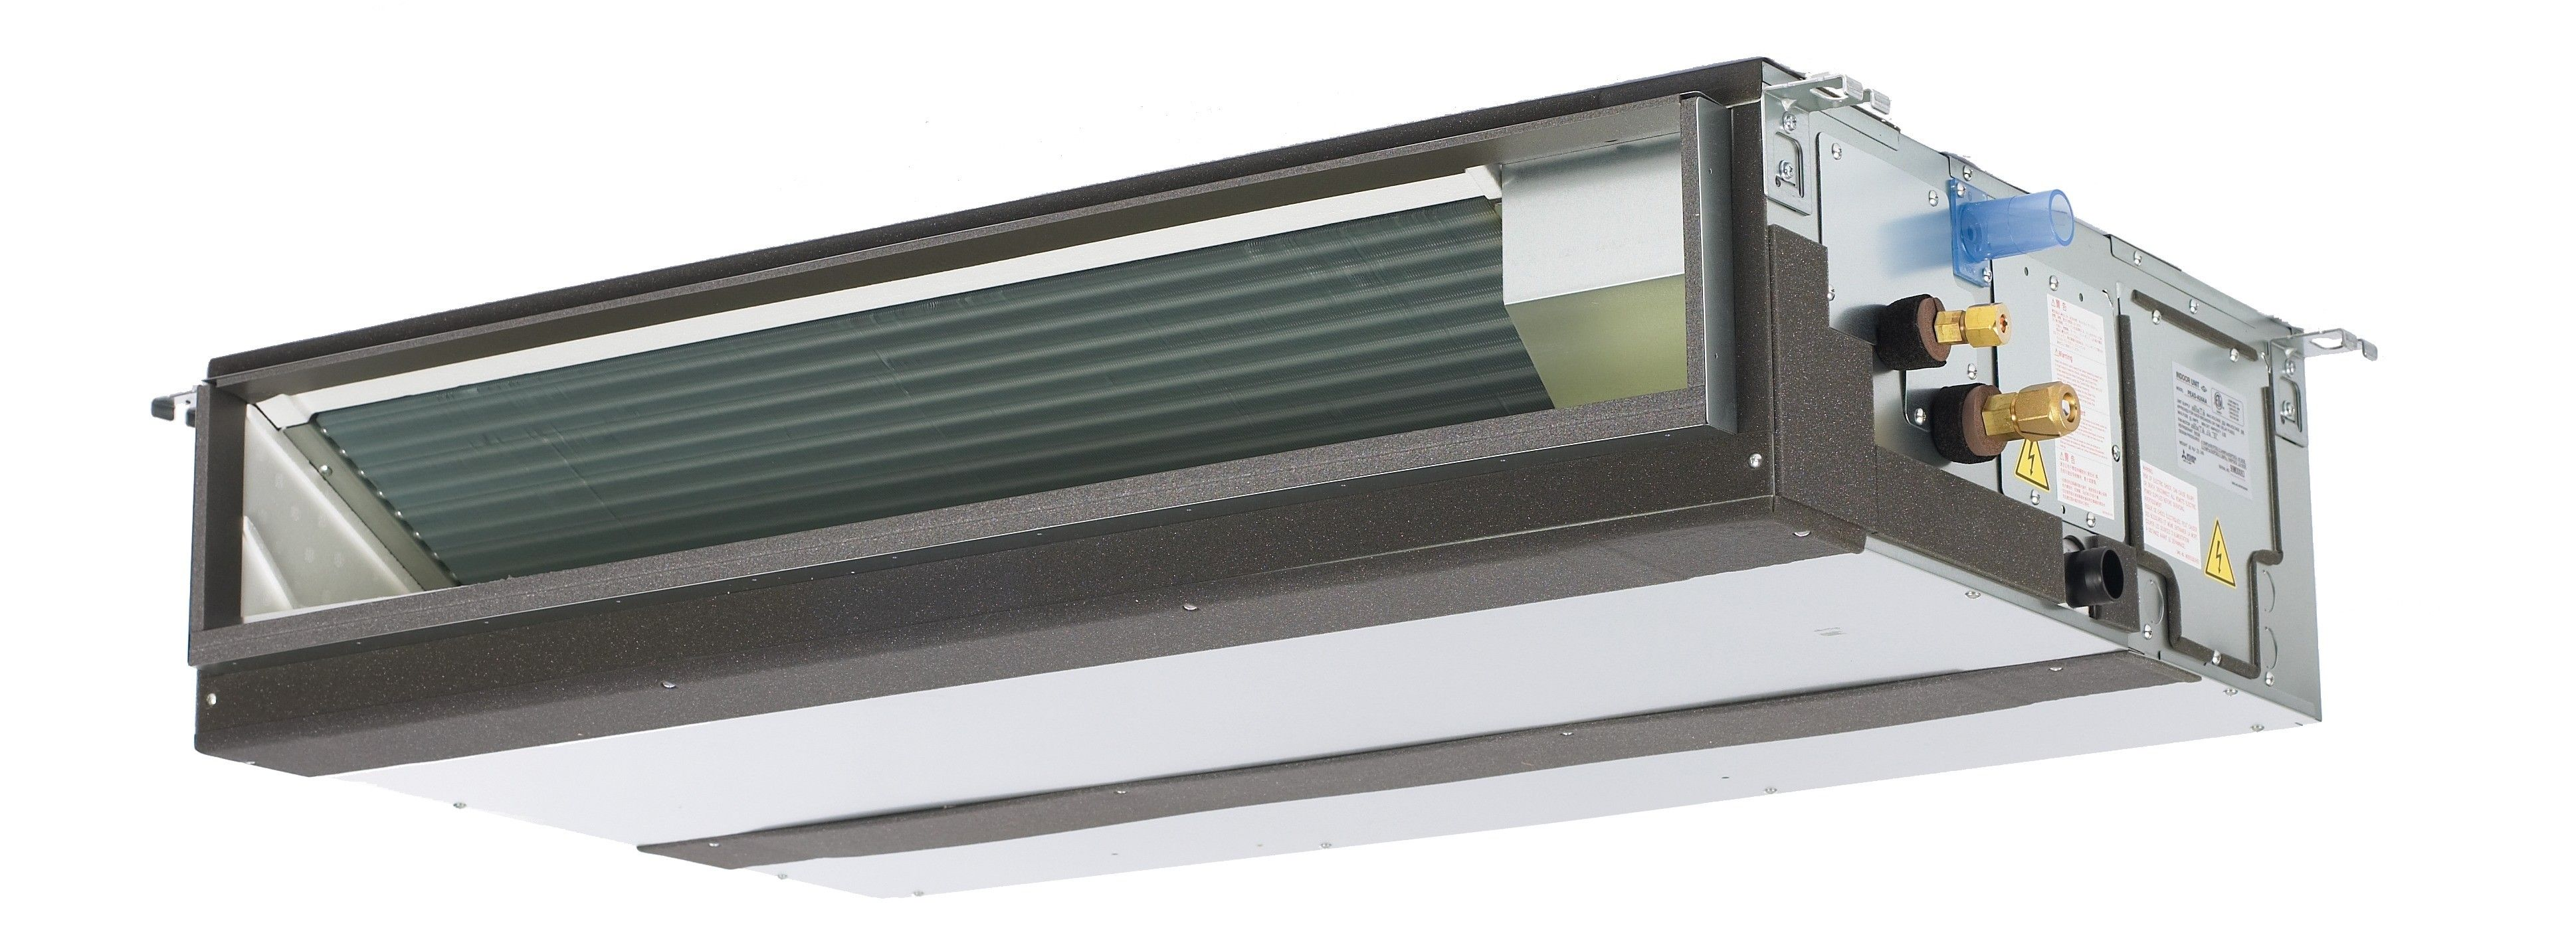 24k btu mitsubishi pead horizontal ducted indoor unit - ductless ac